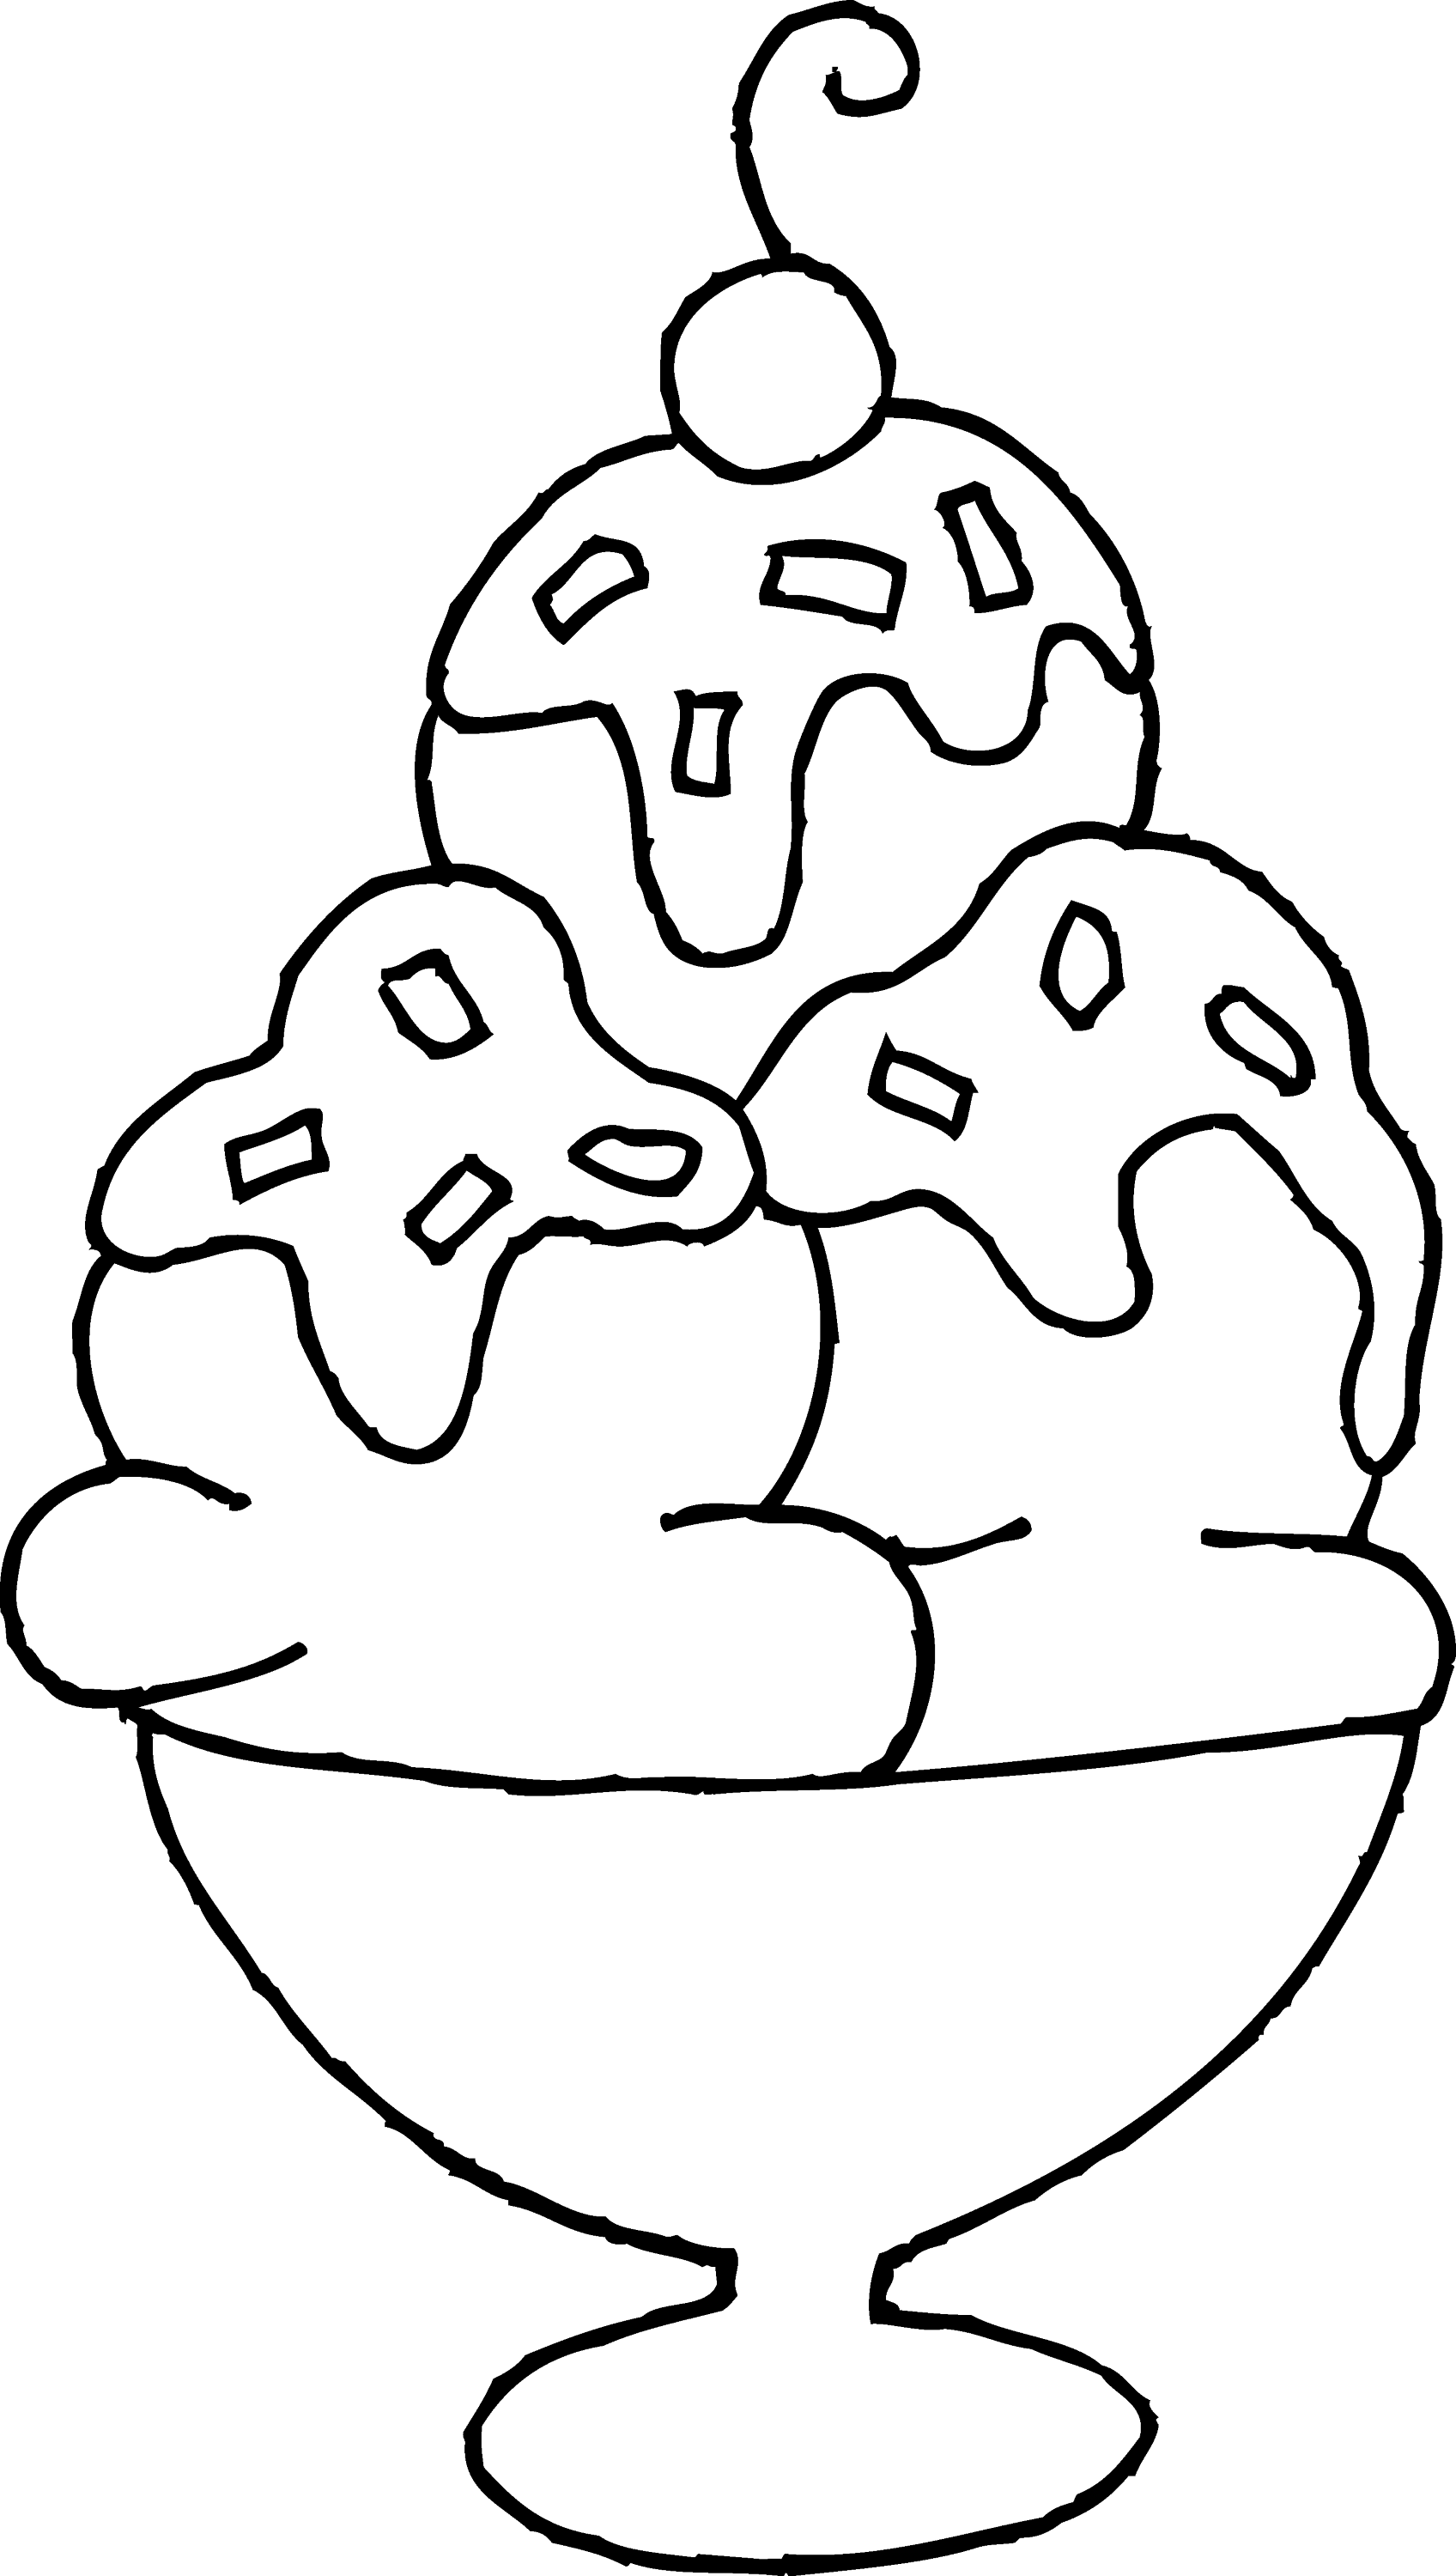 coloring pages of ice cream sundaes best ice cream sundae clipart 24036 clipartioncom pages coloring cream of ice sundaes